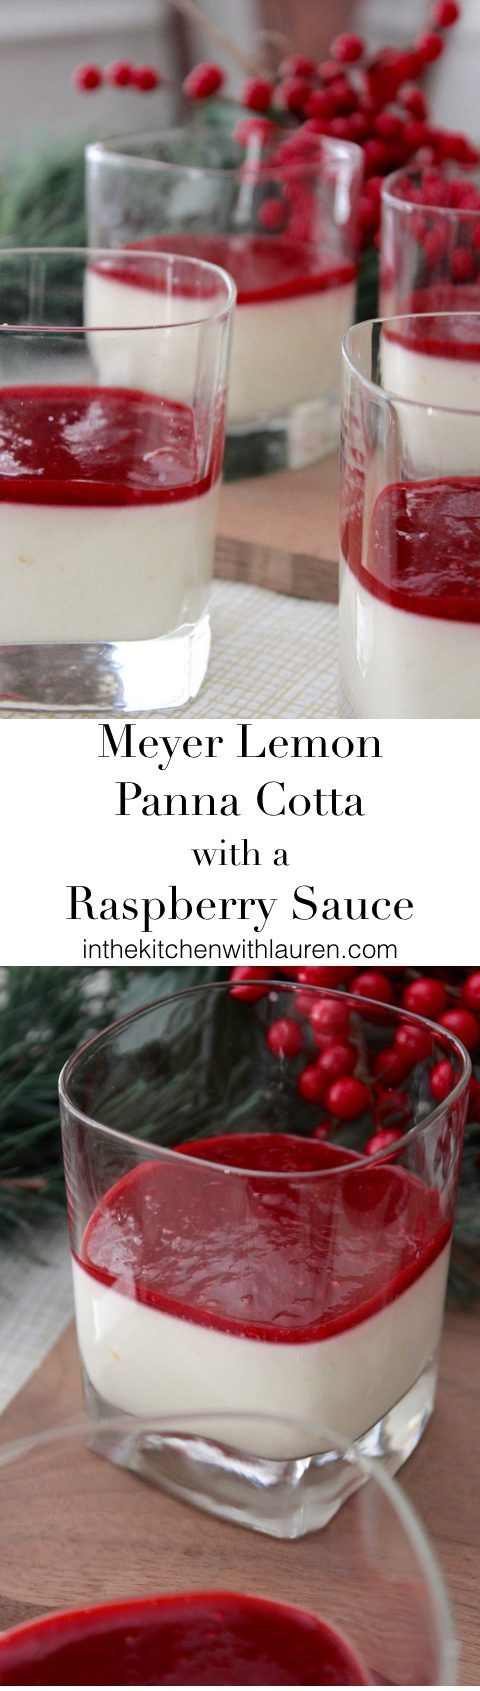 Meyer Lemon Panna Cotta with a Raspberry Sauce | In the Kitchen with Lauren